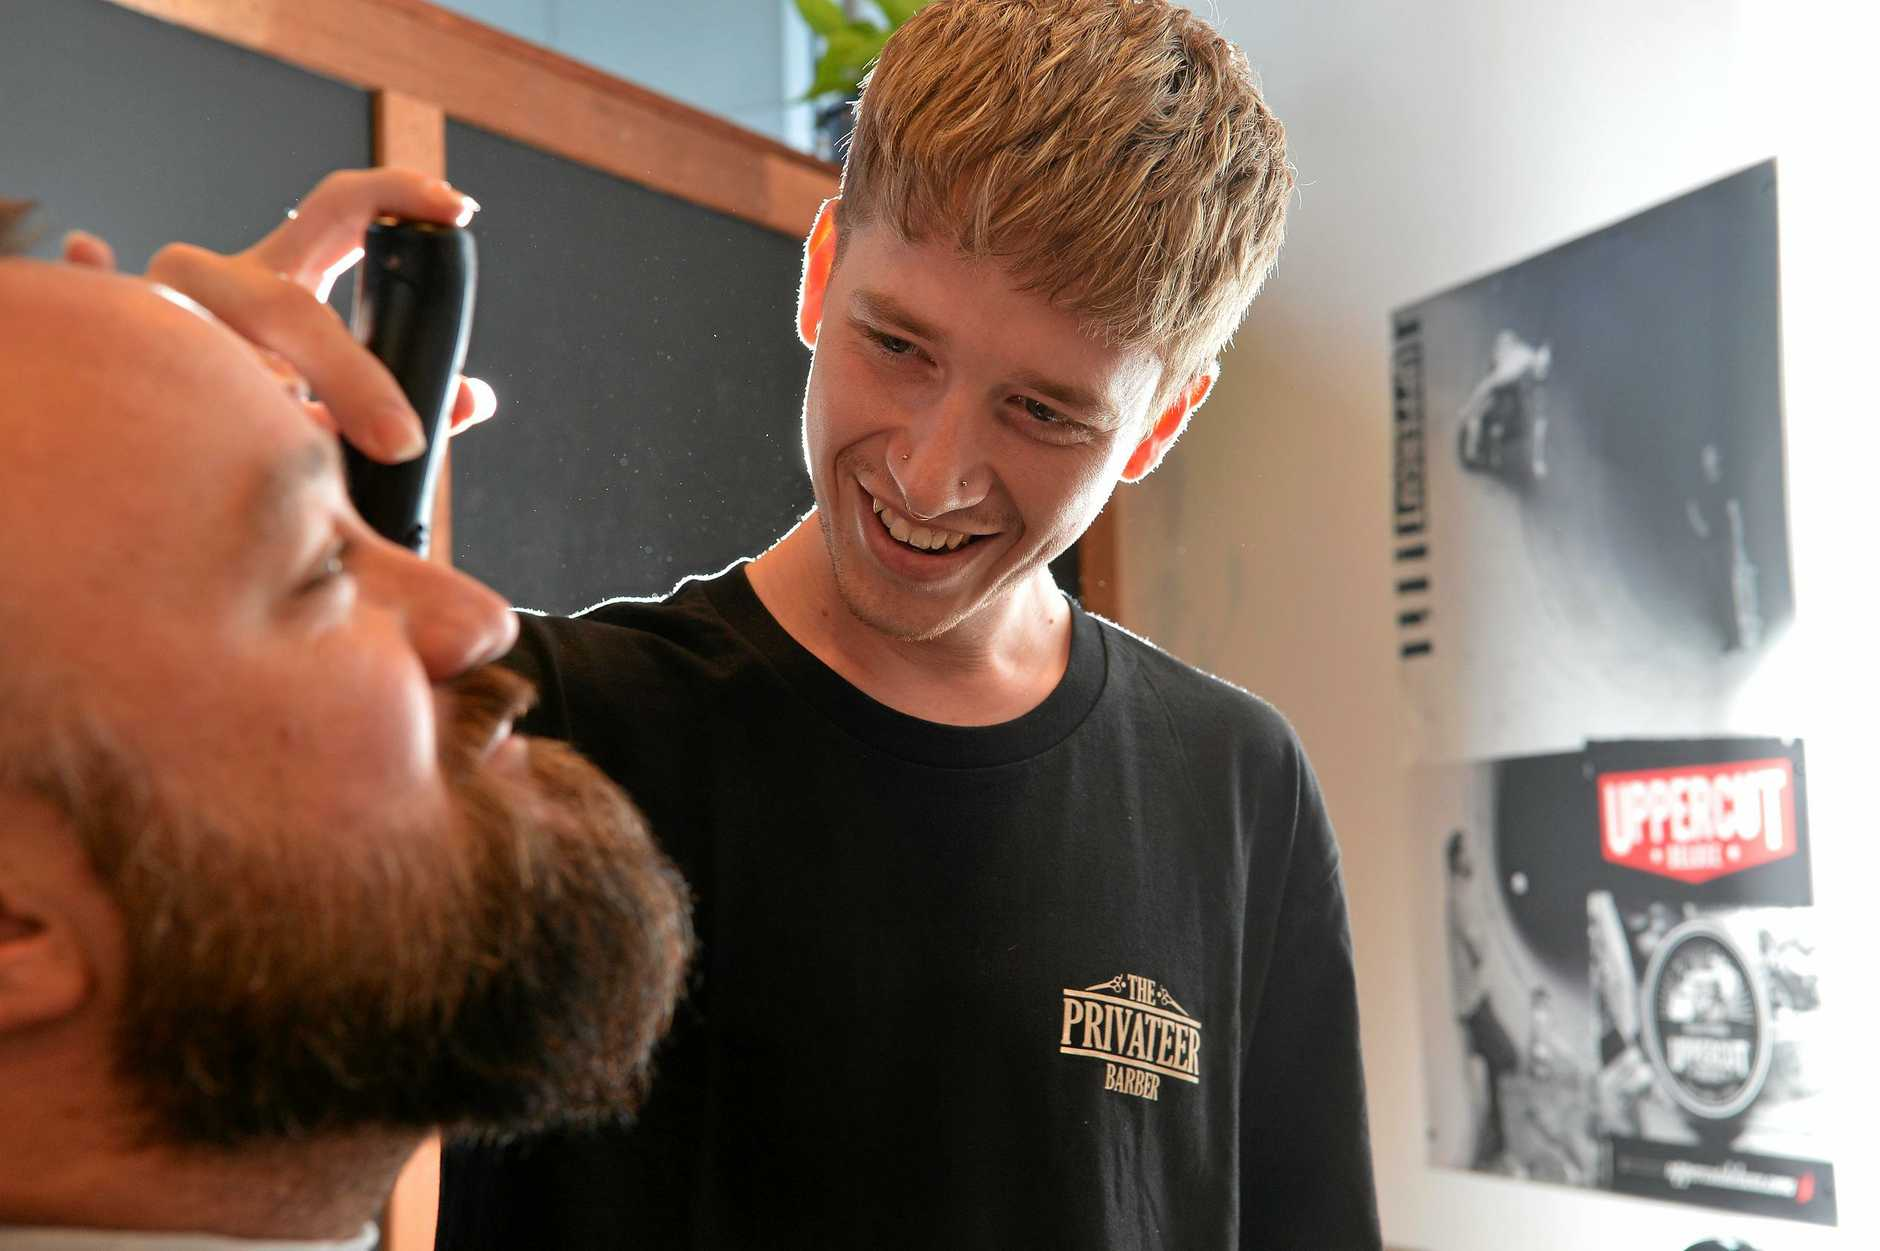 The Privateer Barber has opened in Currie Street  Harry the barber busy cutting hair and beards.